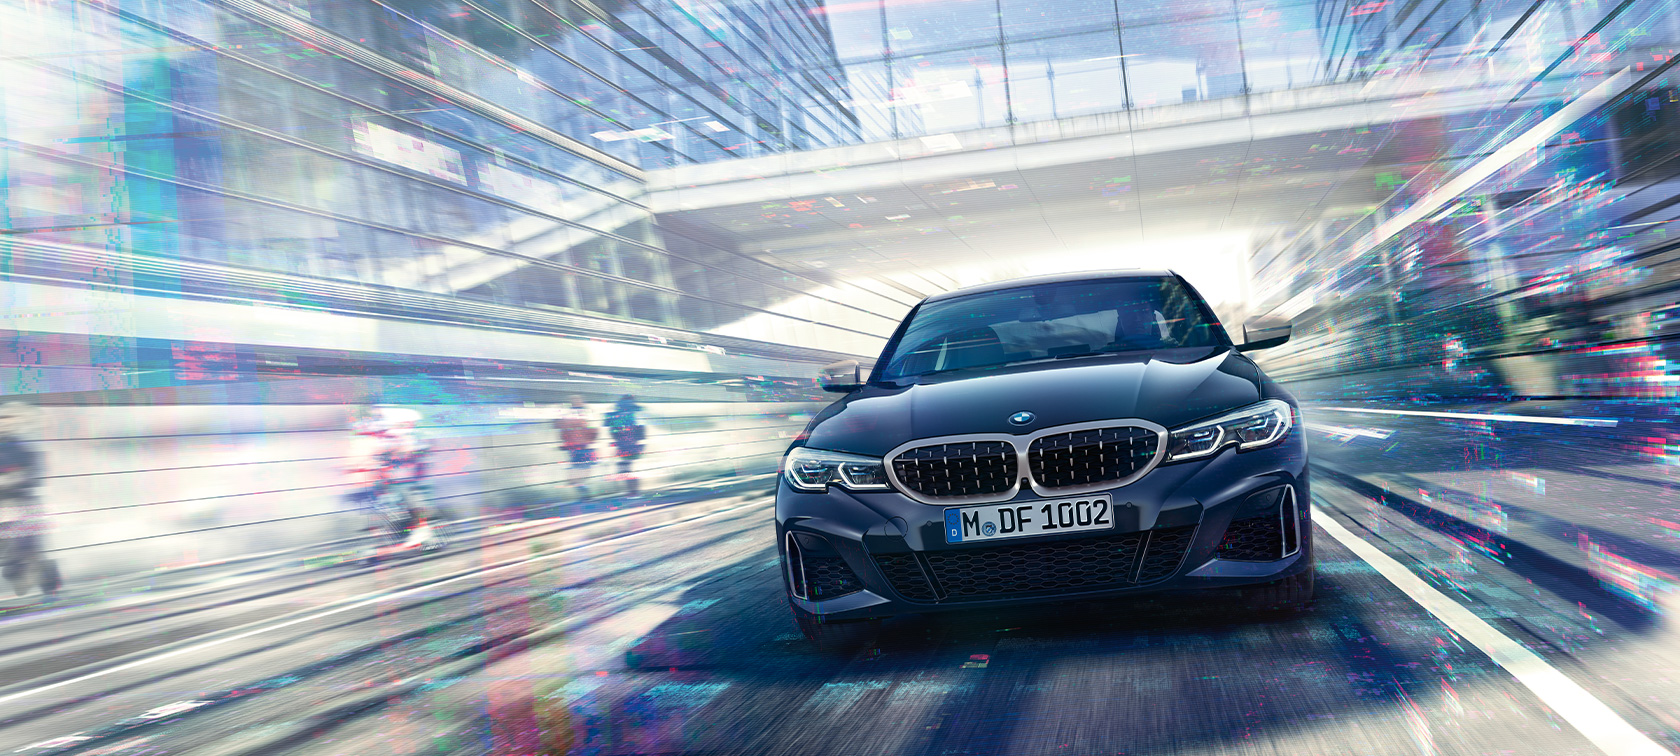 BMW M340i xDrive Berlina G20 Sapphire Black metallizzato vista anteriore in movimento